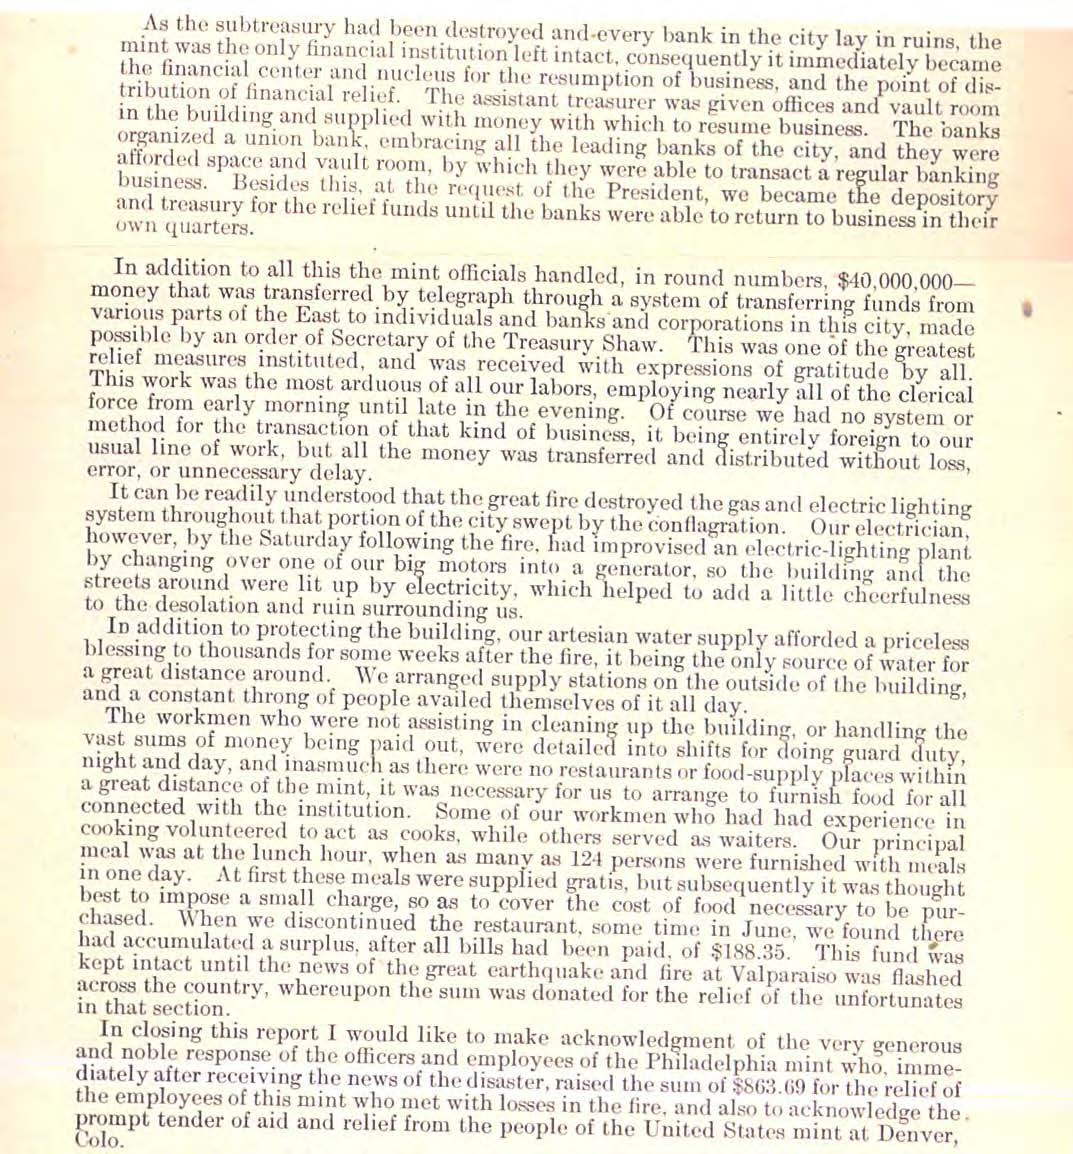 1906 Annual Report Excerpt, Page 43